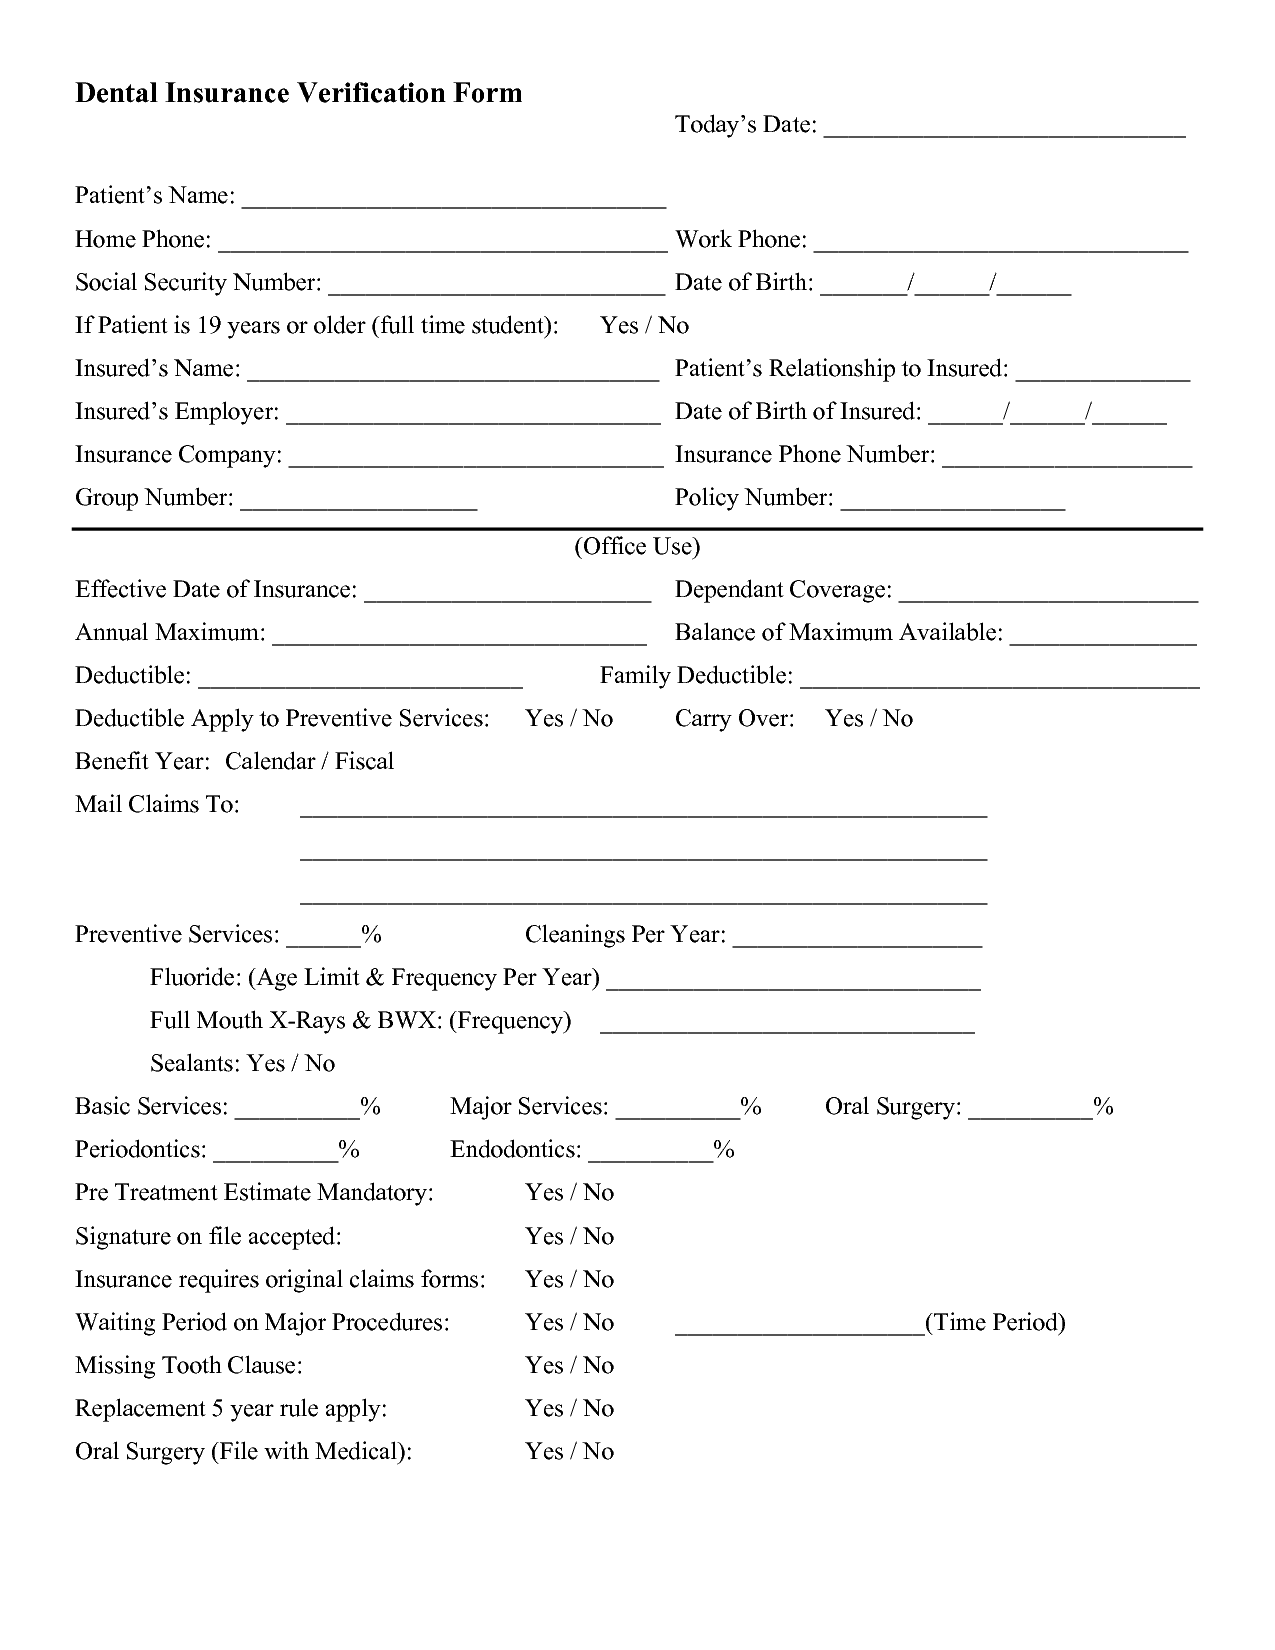 insurance breakdown template  Dental Insurance Verification Forms Dental Insurance | Yummies ...